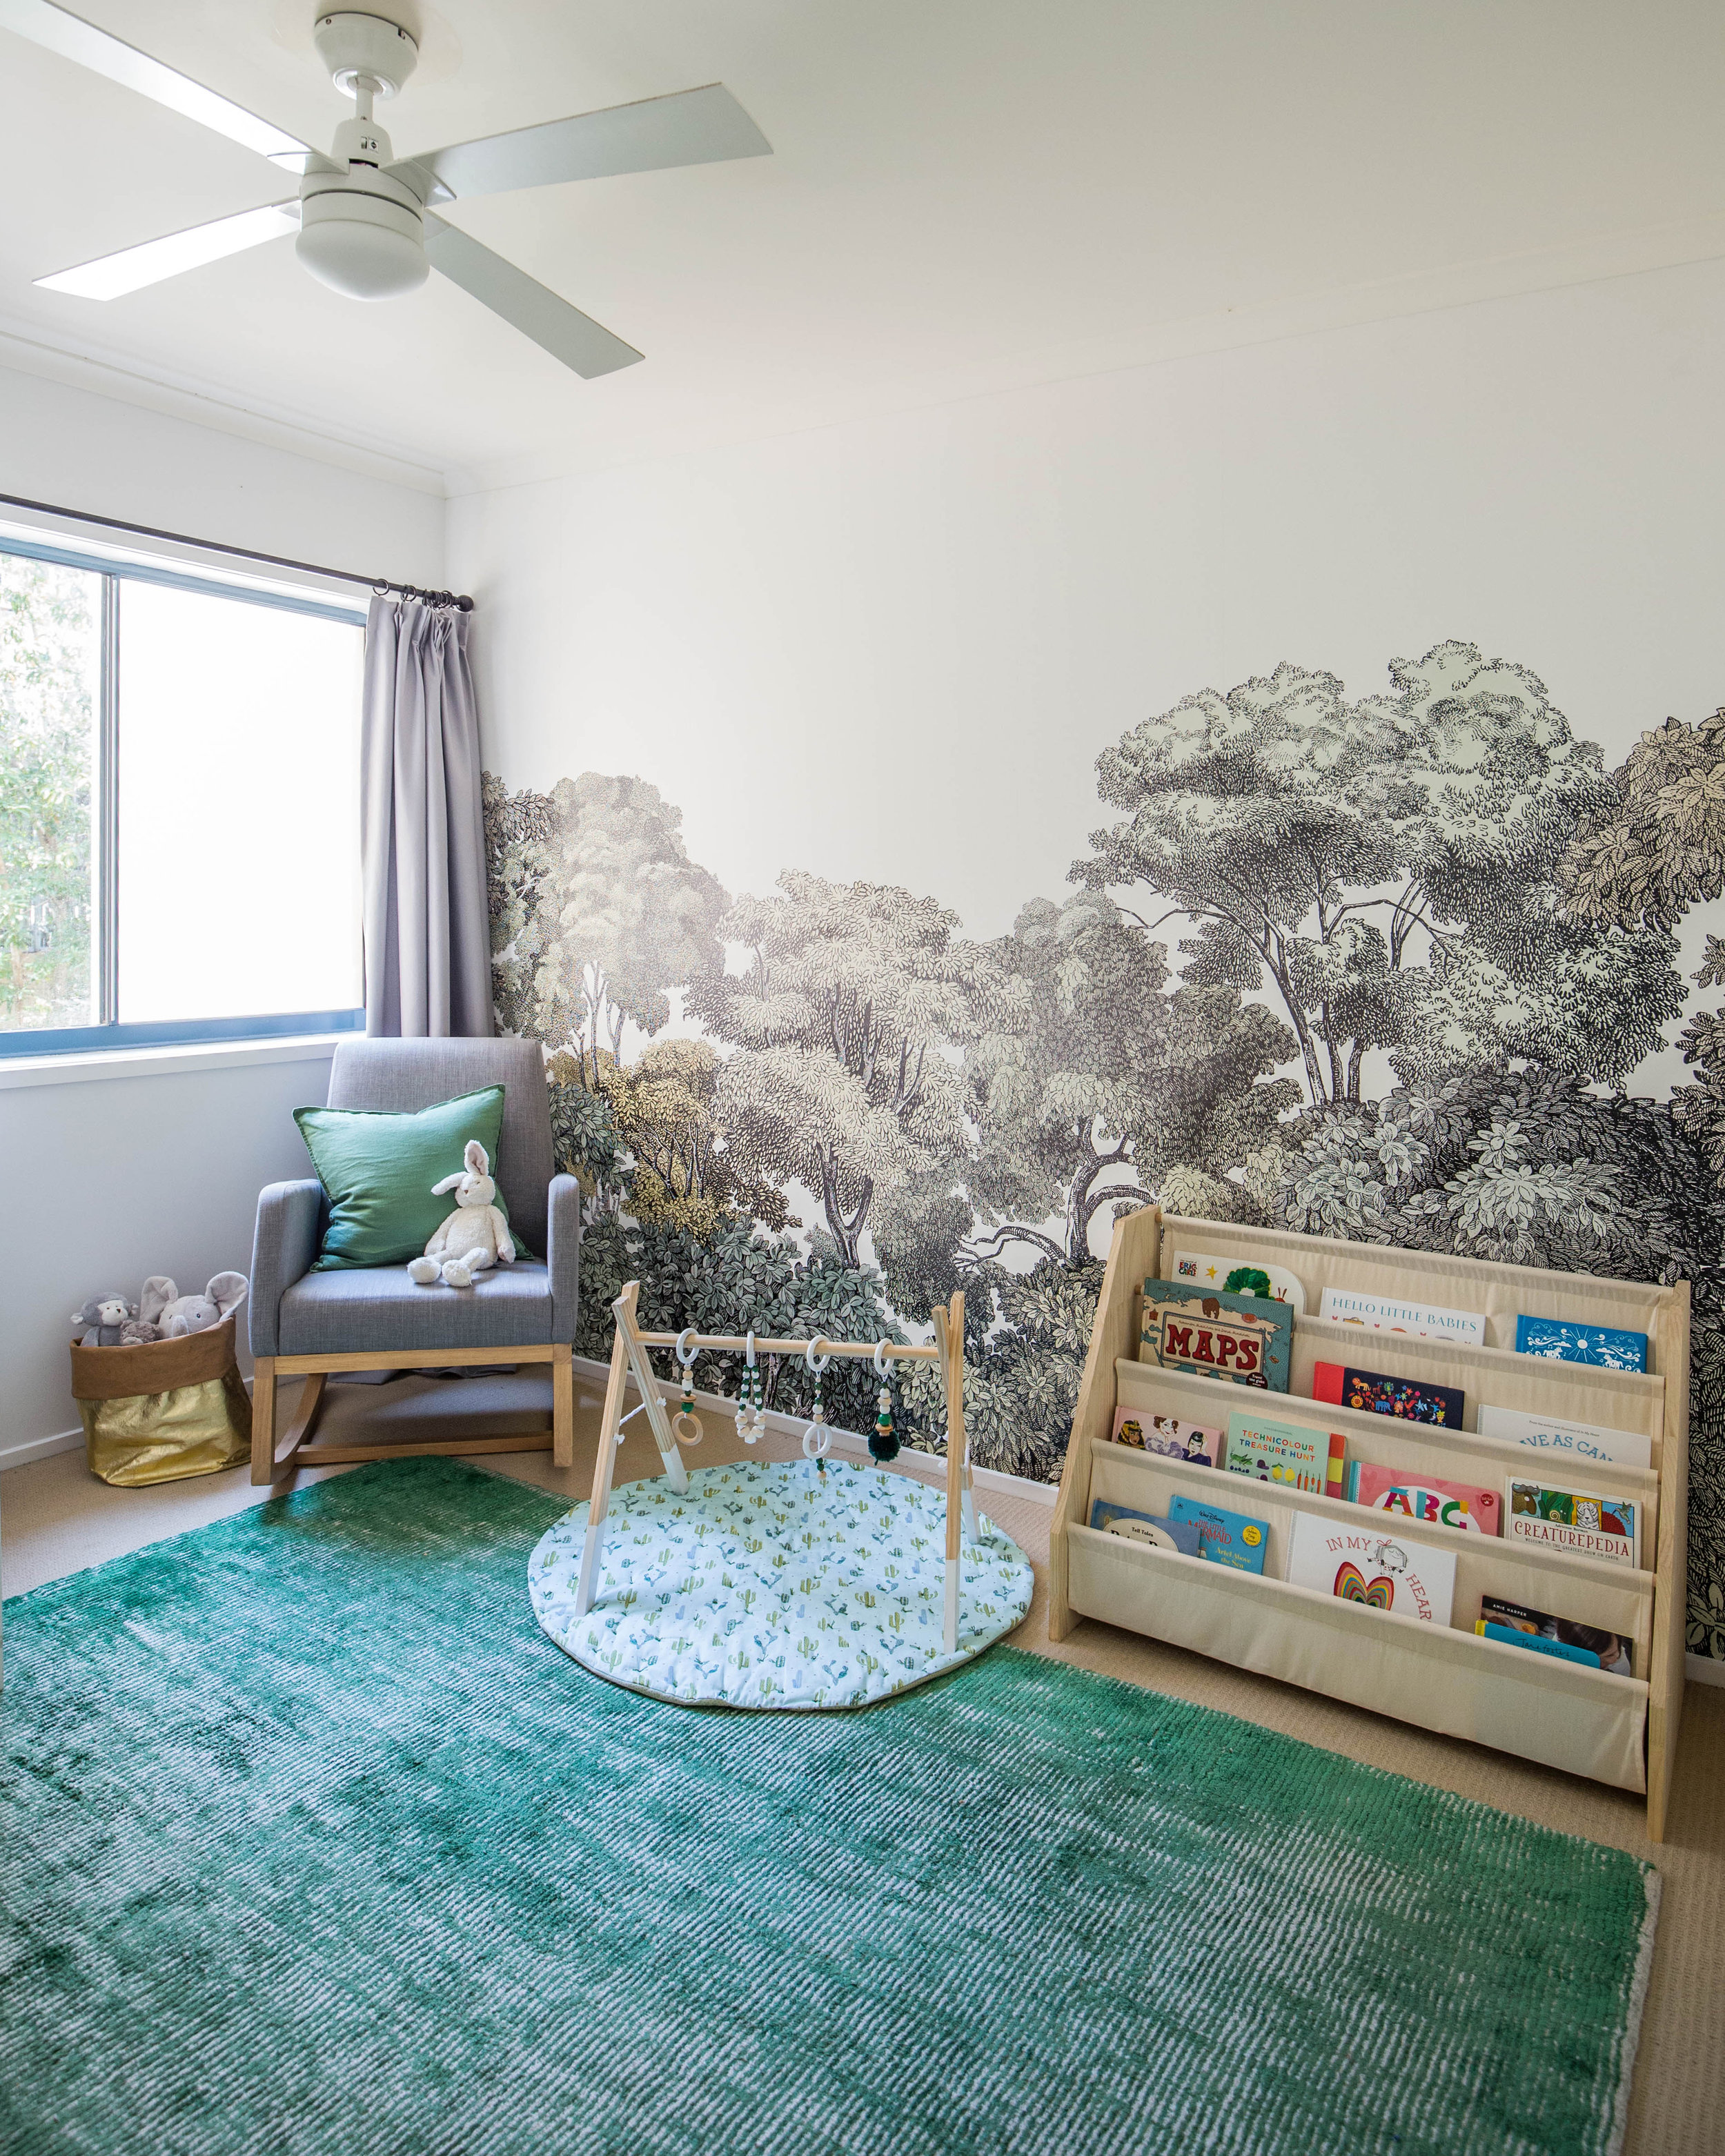 Tanika's Baby Room - Nursery - Interior Design - Tanika Blair Stying & Photography - IMG_9033.jpg